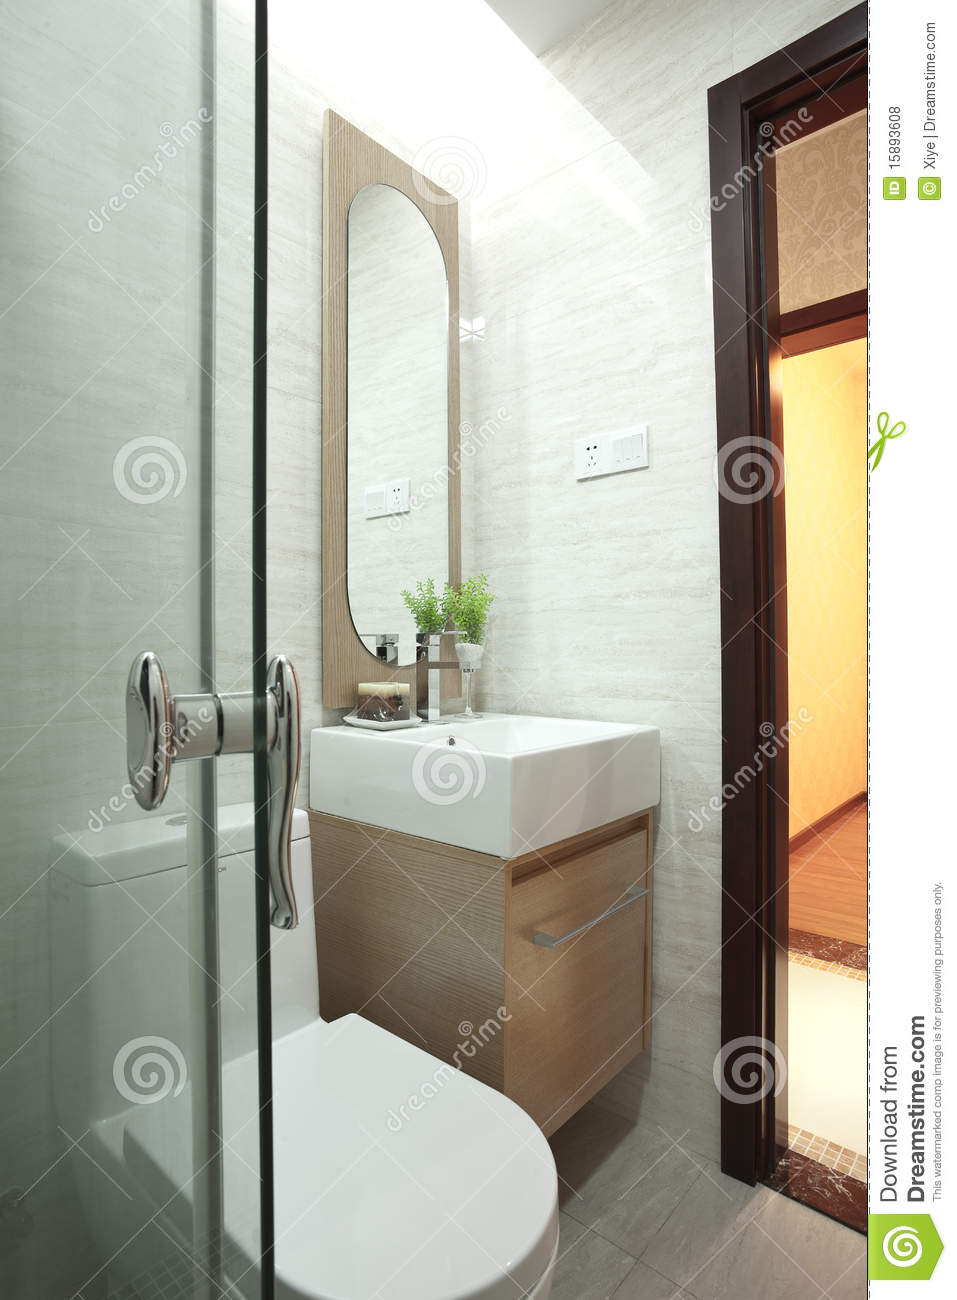 Toilet With Bathroom Royalty Free Stock Photos Image 15893608